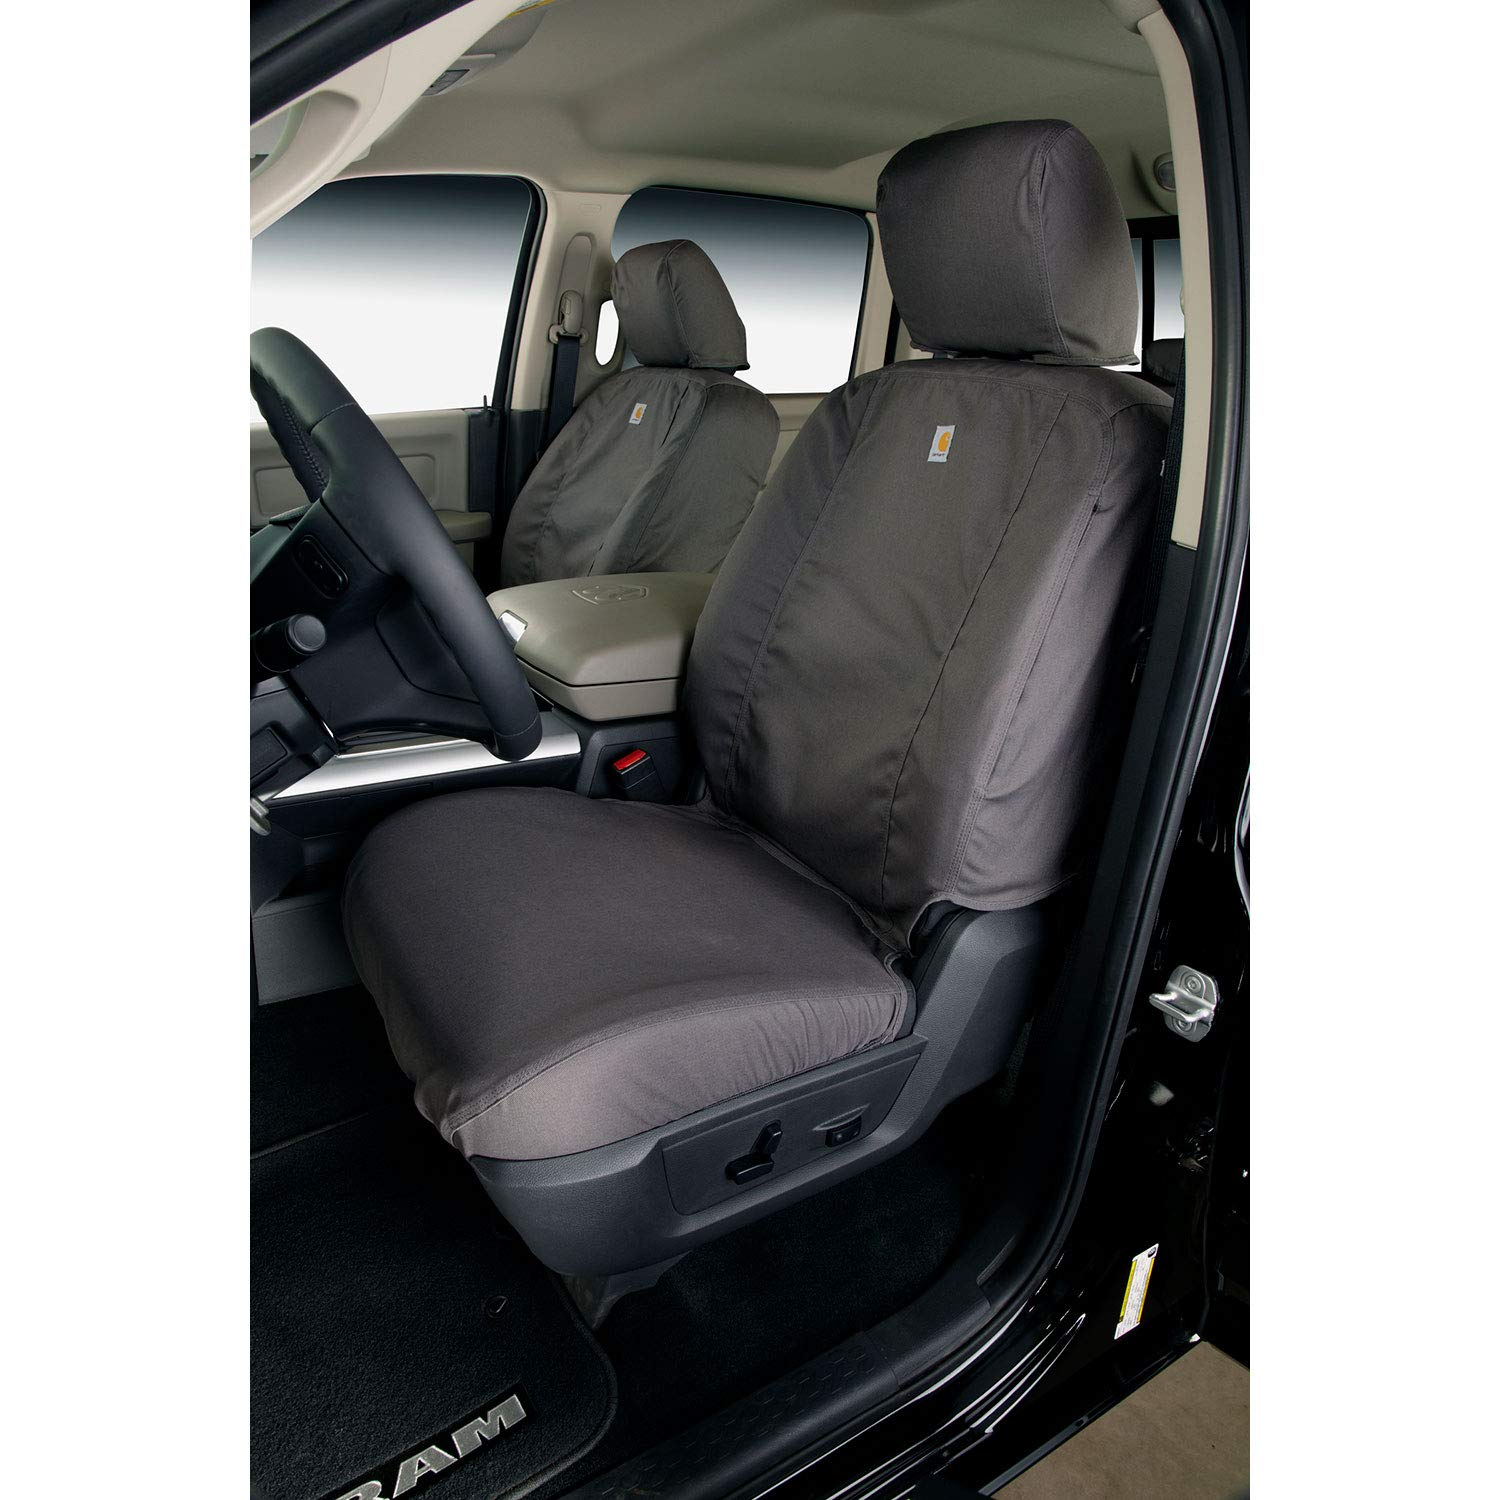 Covercraft Carhartt SeatSaver Front Row Custom Fit Seat Cover for Select Toyota Tacoma Models - Duck Weave (Gravel) by Covercraft (Image #4)